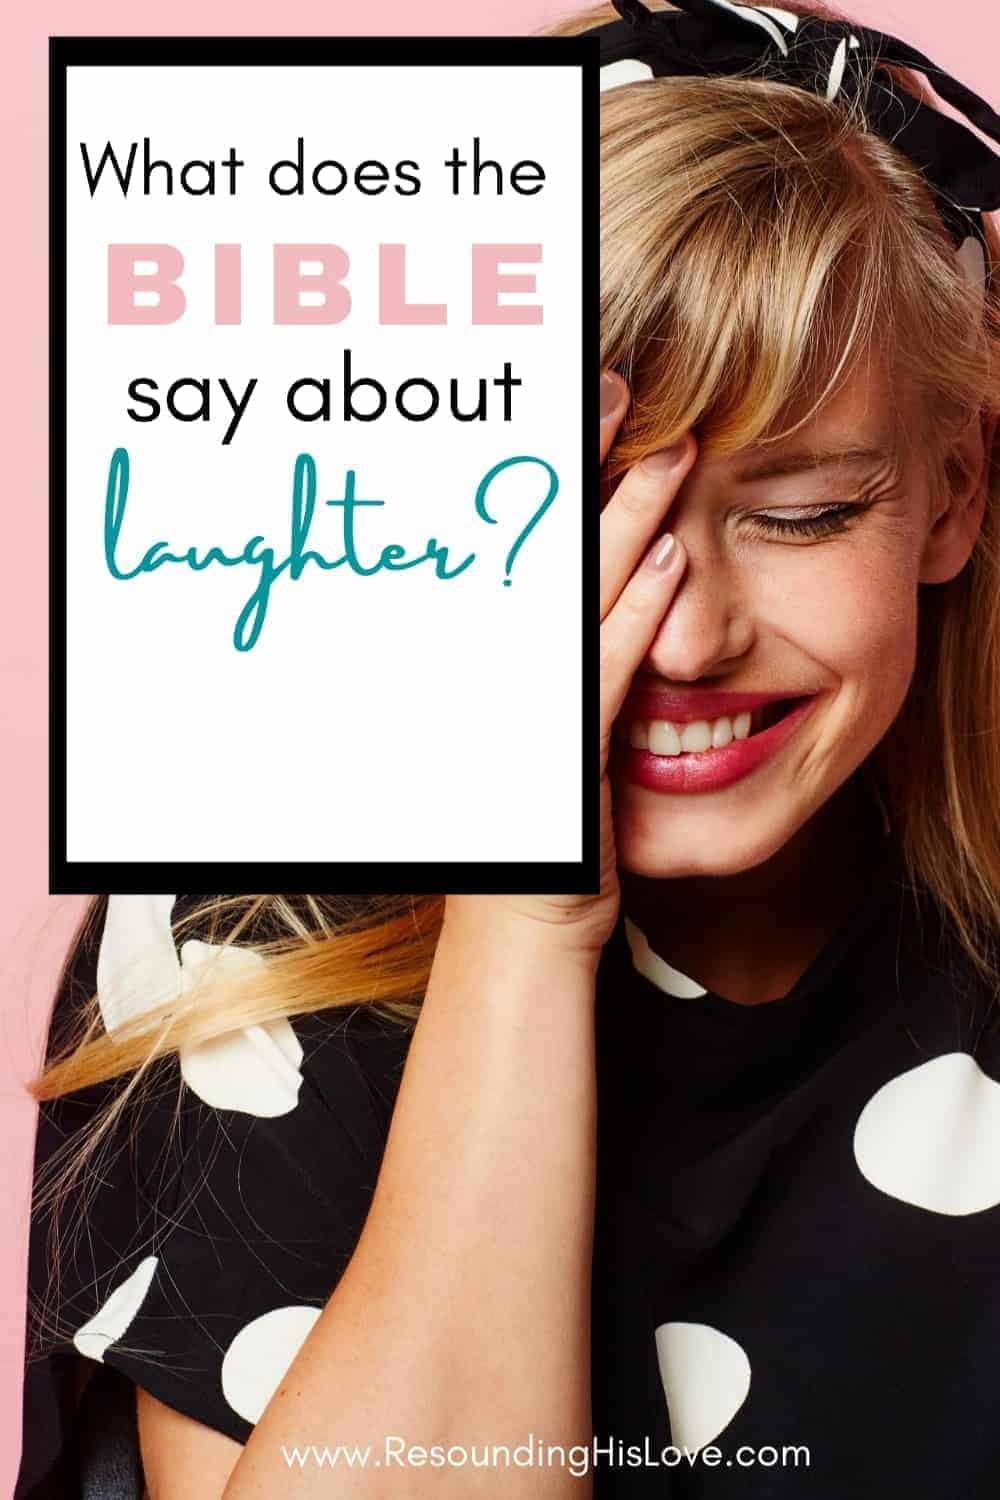 an image of a woman laughing covering her face and blushing with text reading What Does the Bible Say About Laughter?